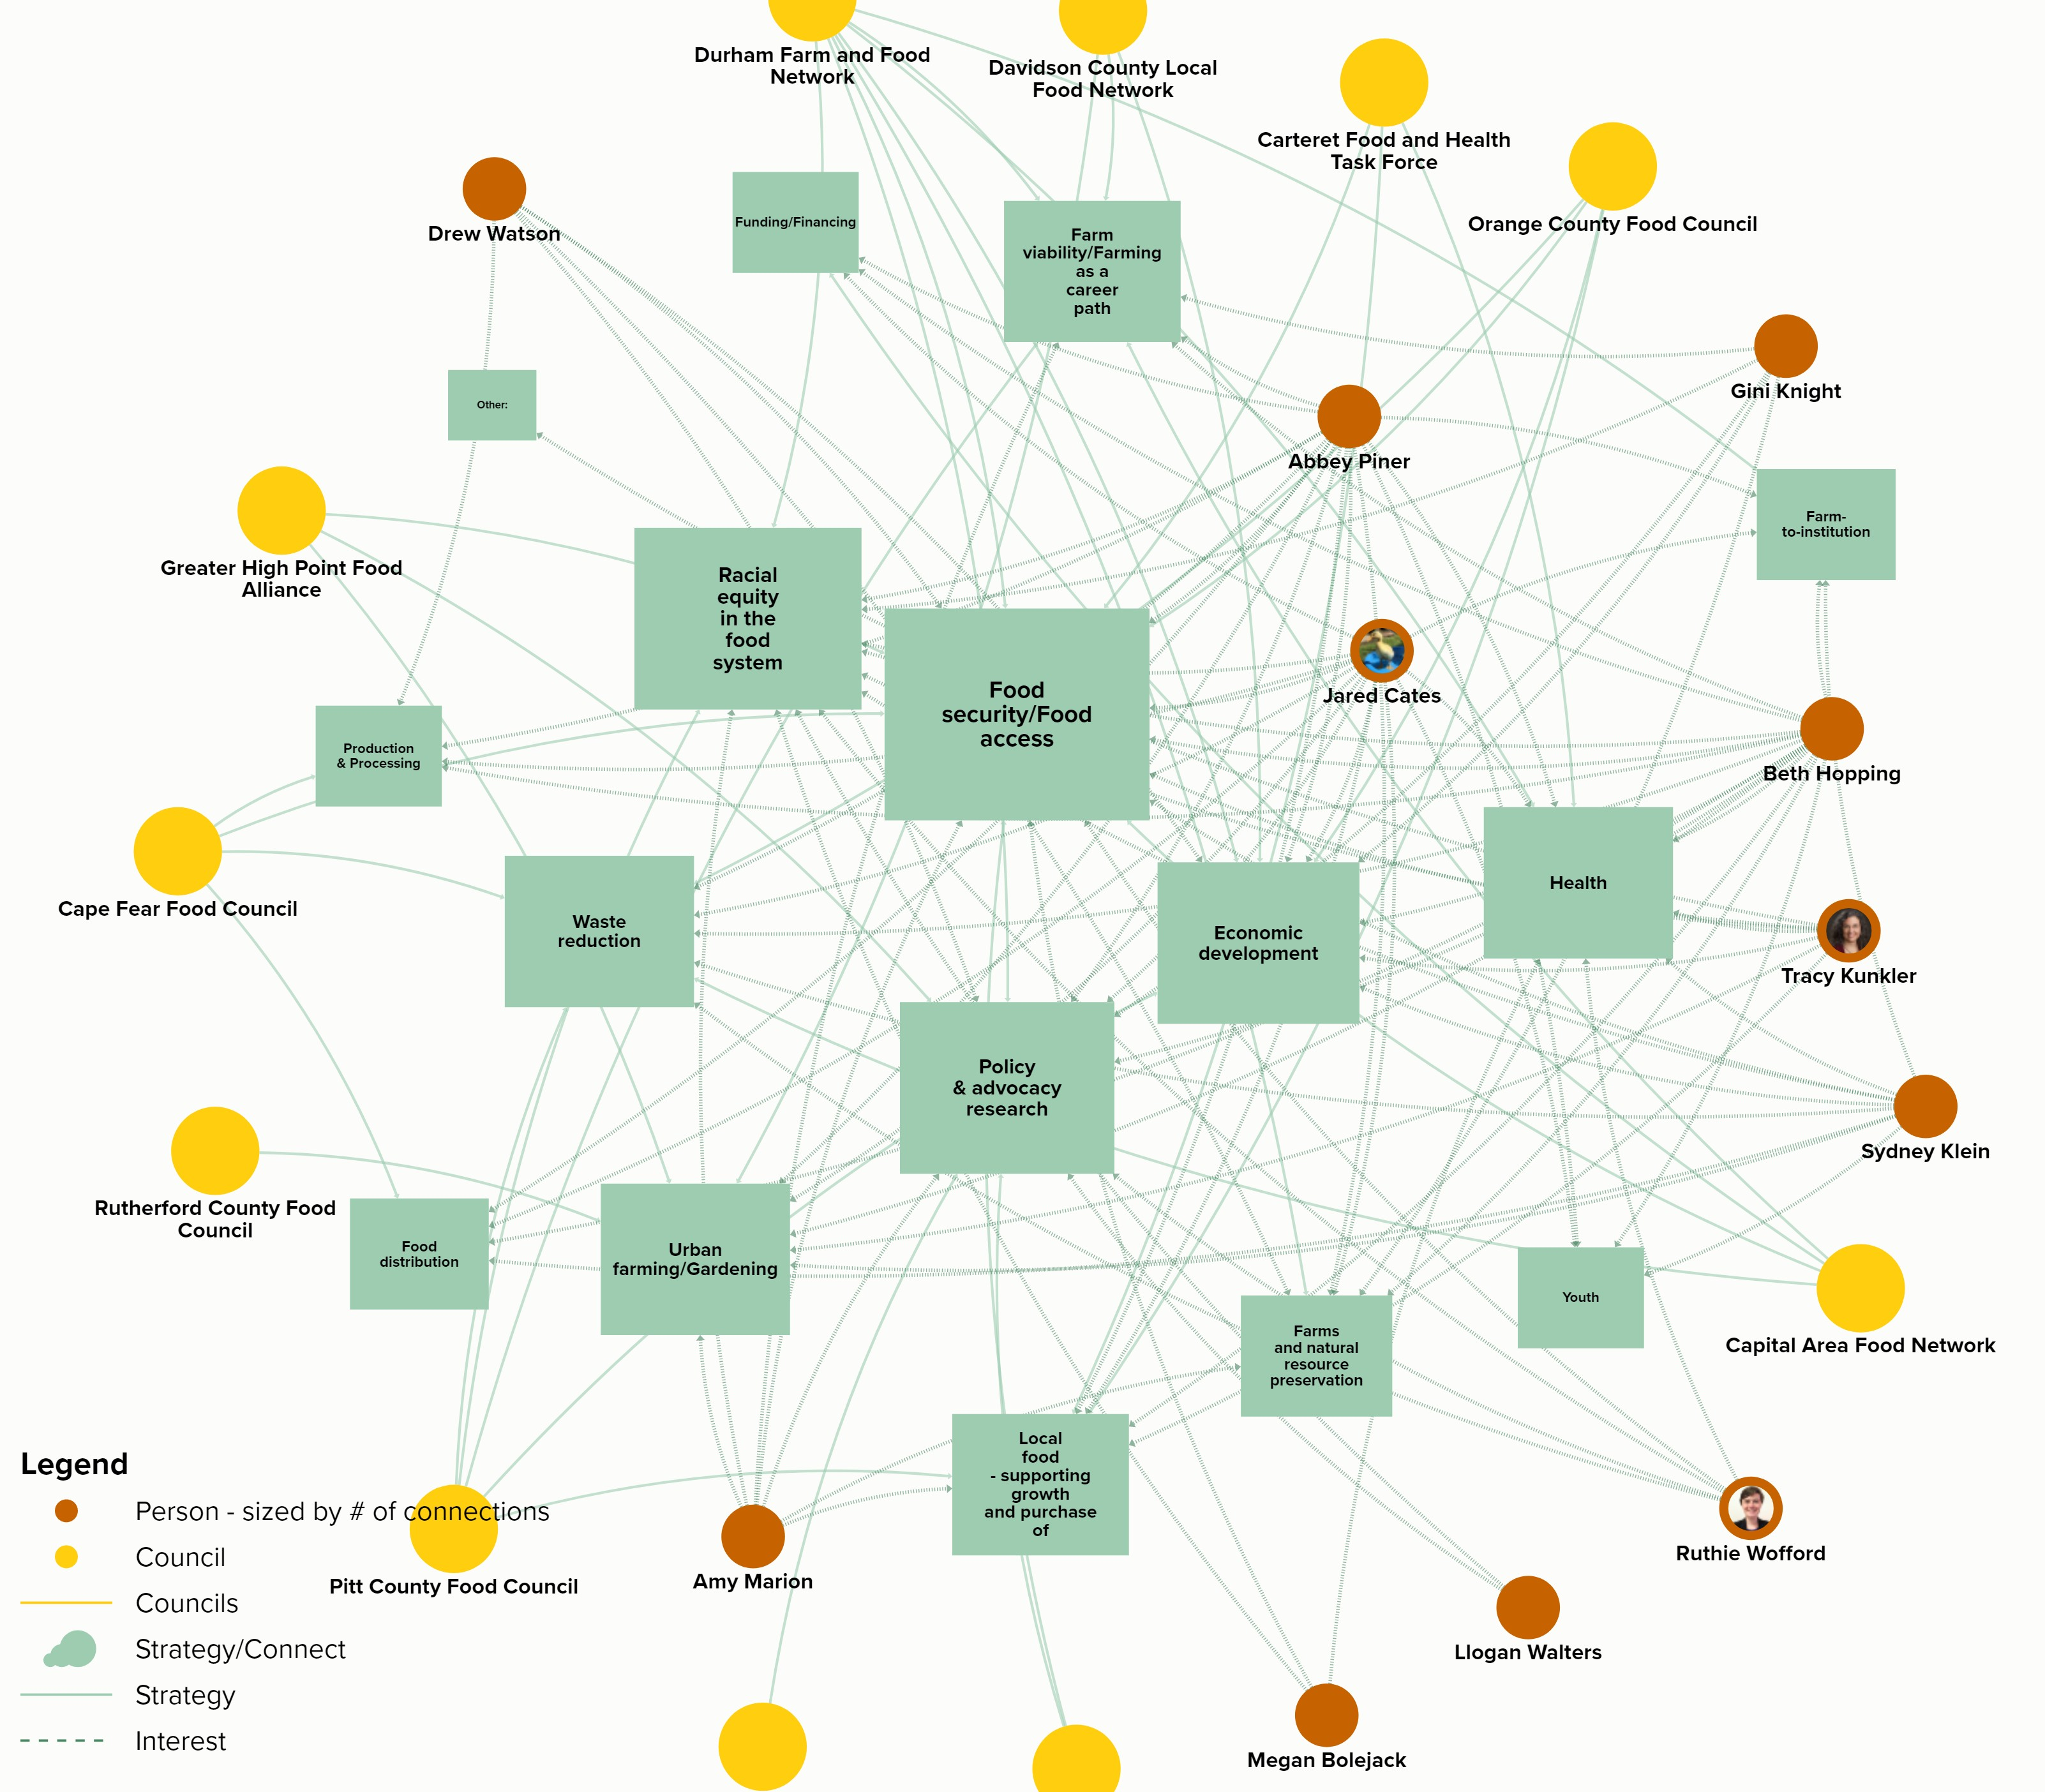 Community Food Strategies shares an mock-up network map of the food councils across the state categorized by issue areas, collaborations, and policy work.